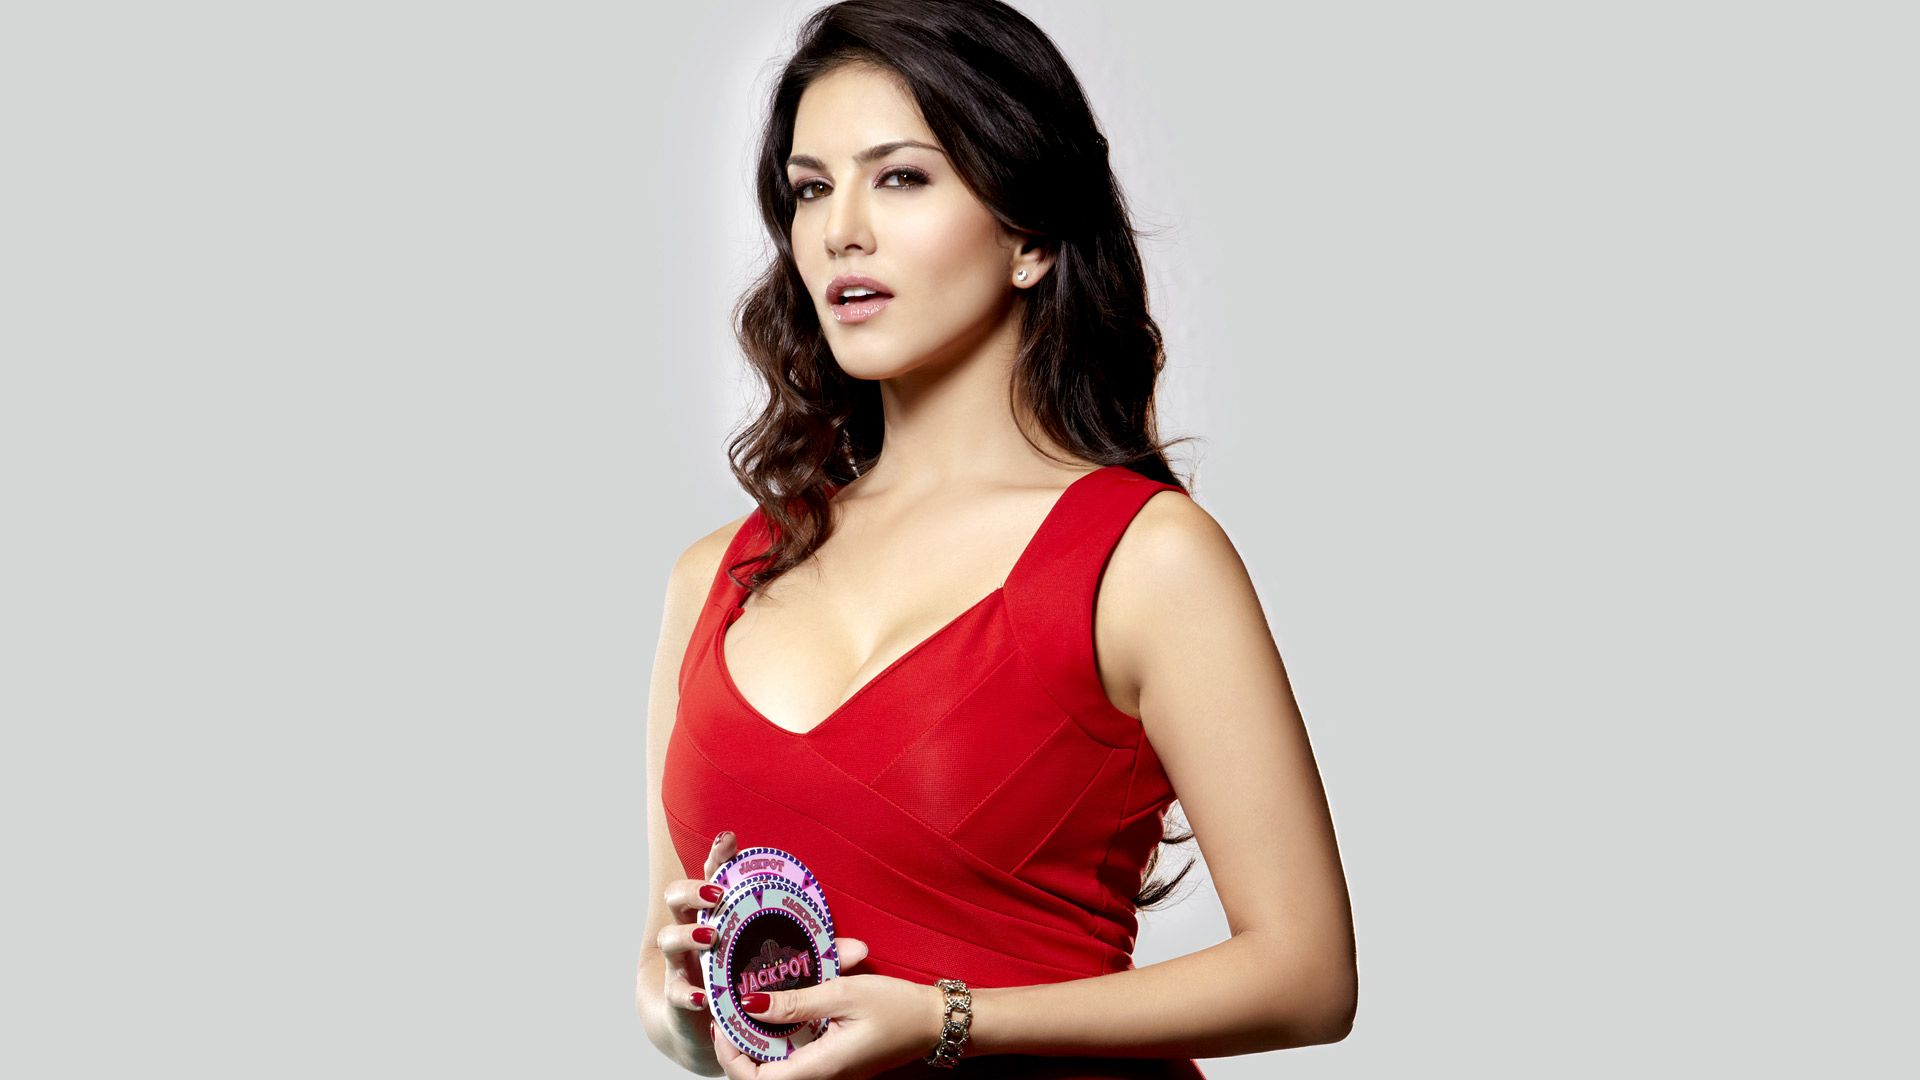 Hd Wallpaper Awesome Sunny Leone HD Wallpapers Live